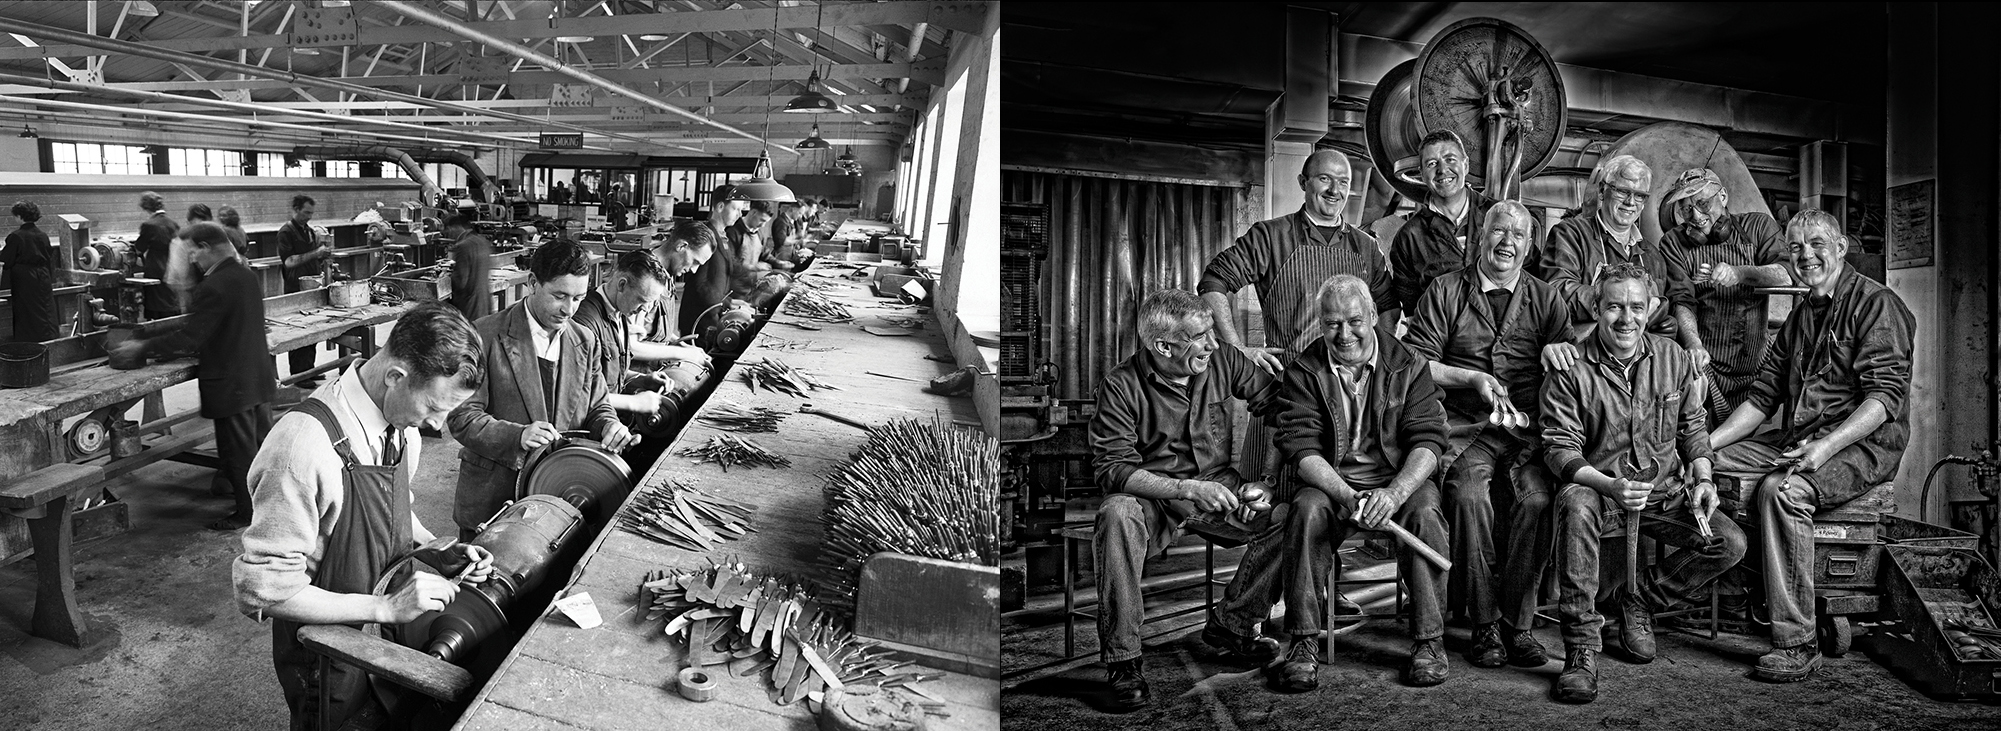 Our Factory Team,1958 and today.